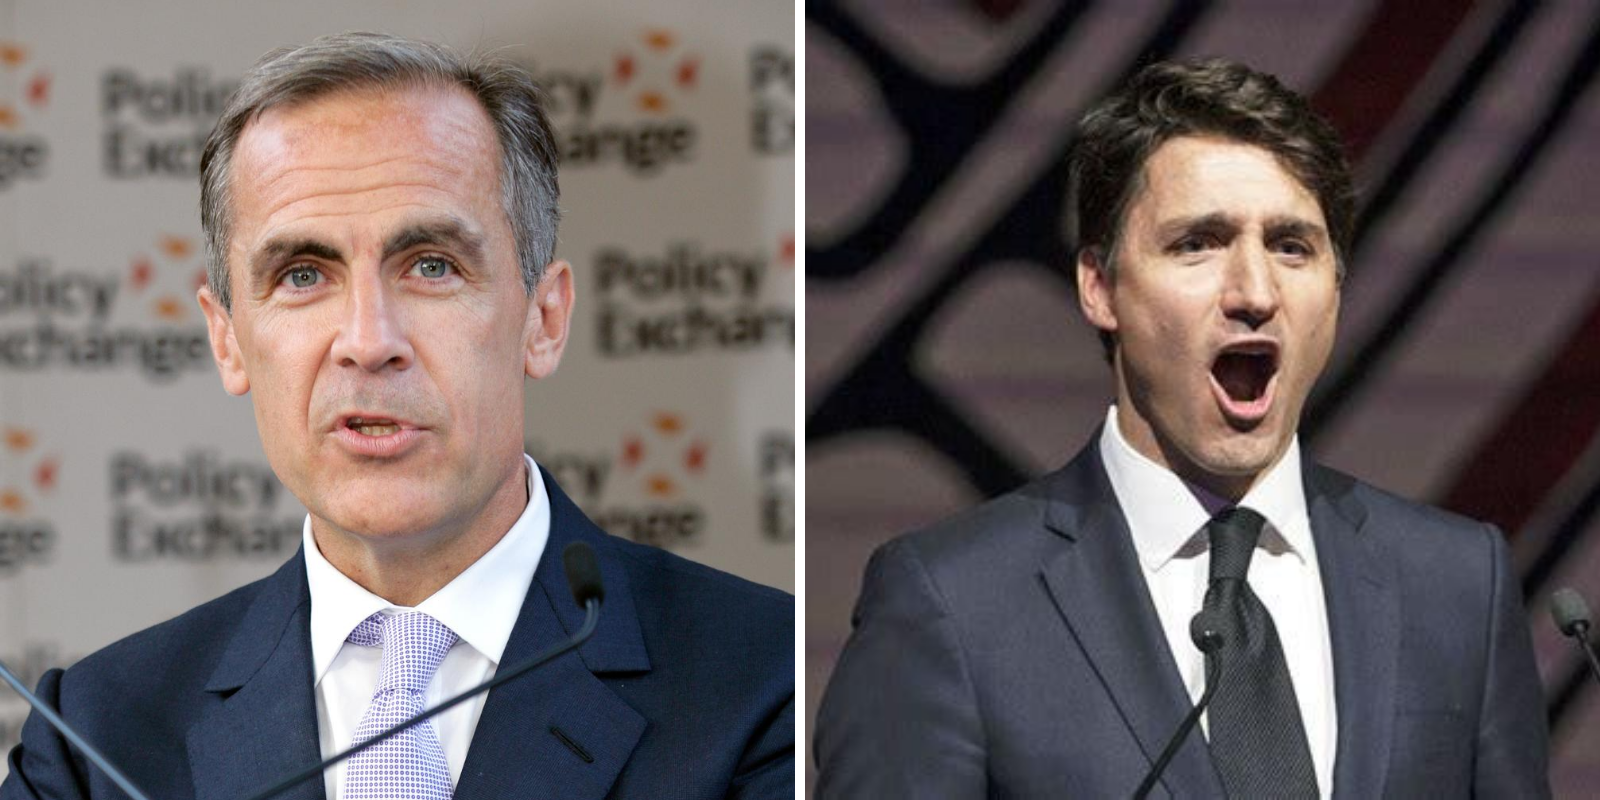 BREAKING: Former Governor of the Bank of England set to advise Trudeau